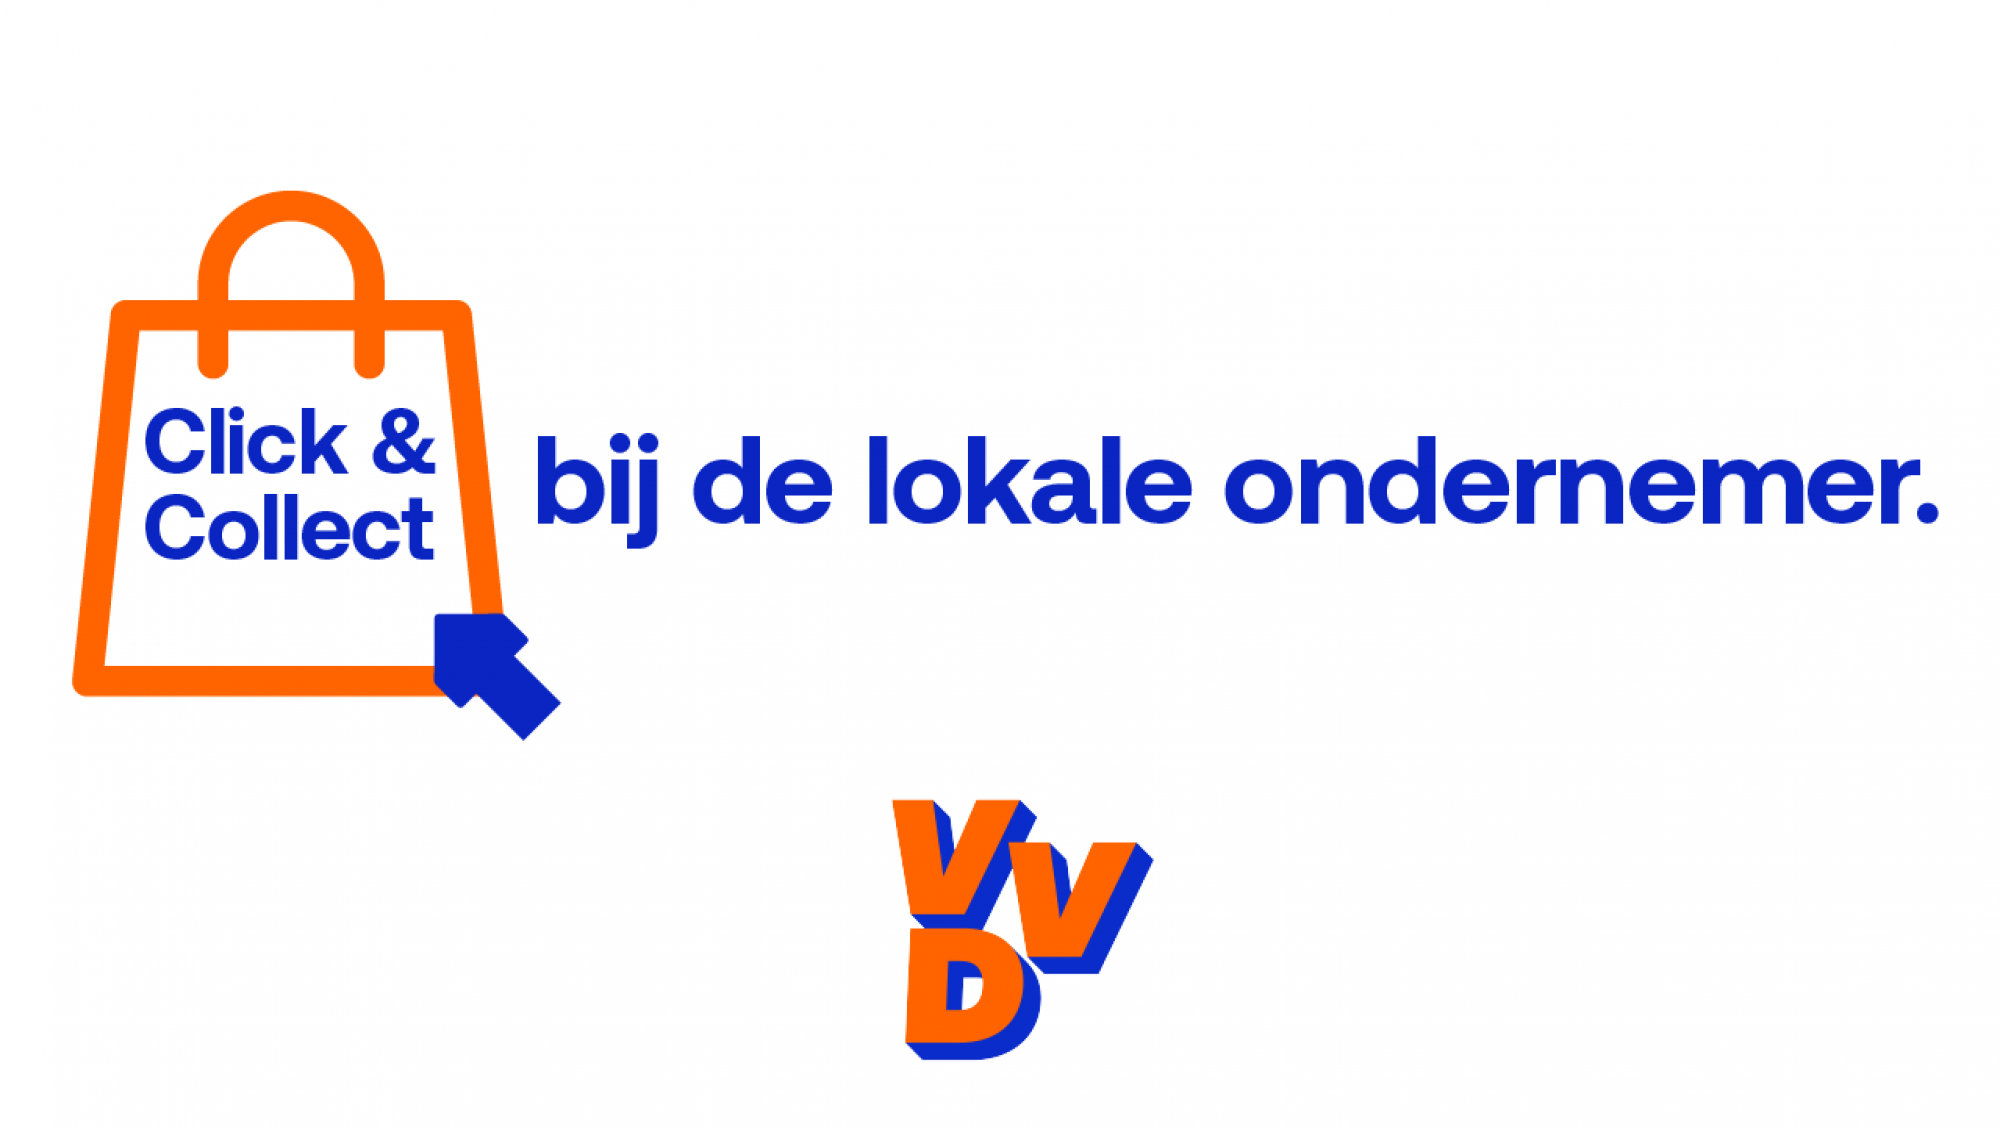 Click & Collect - Steun je lokale ondernemer.